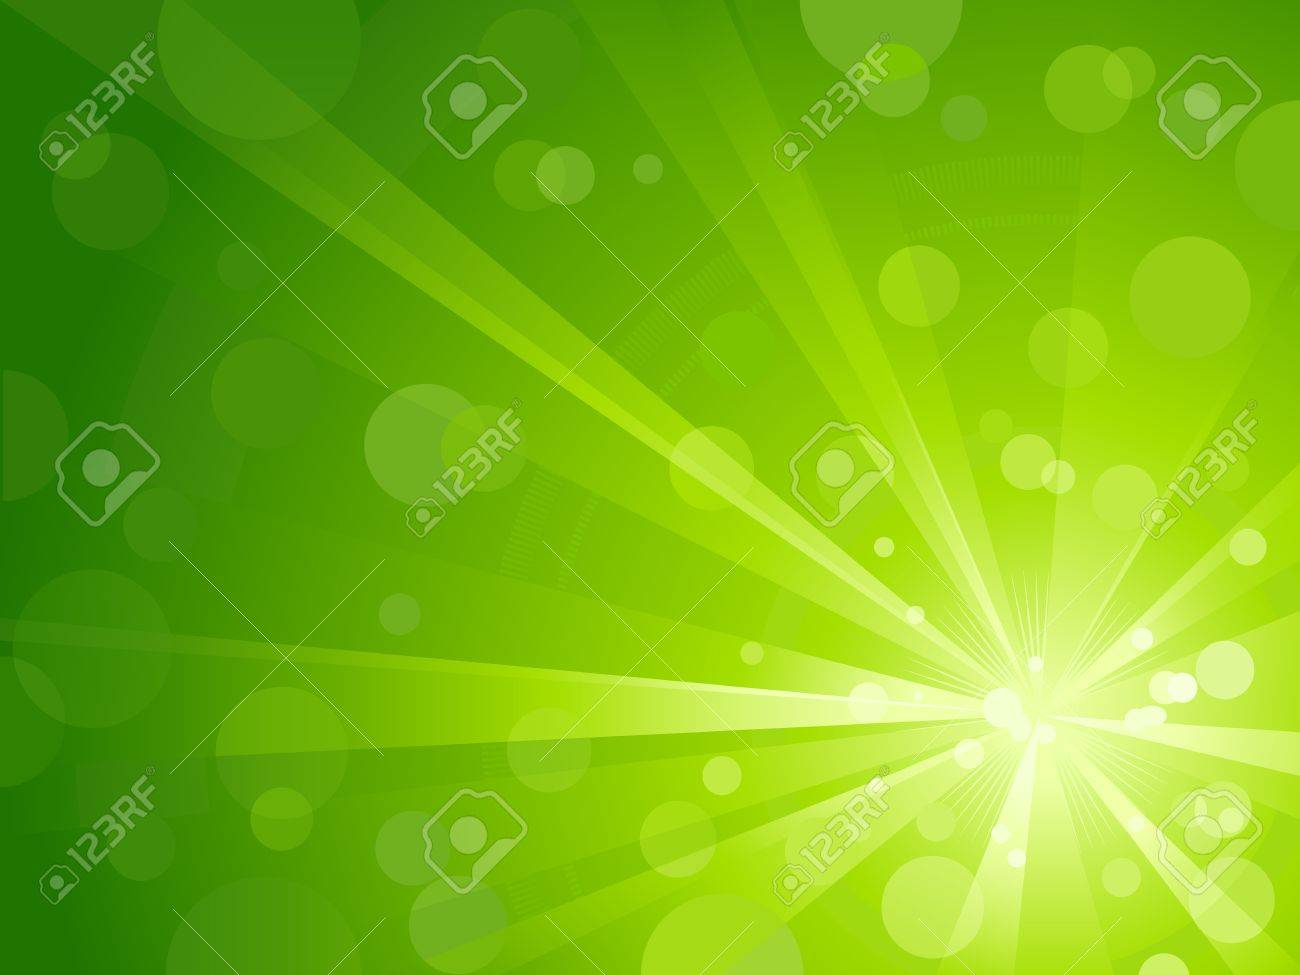 Explosion of light with shiny light dots, striking abstract background in shades of green. Stock Vector - 6989117